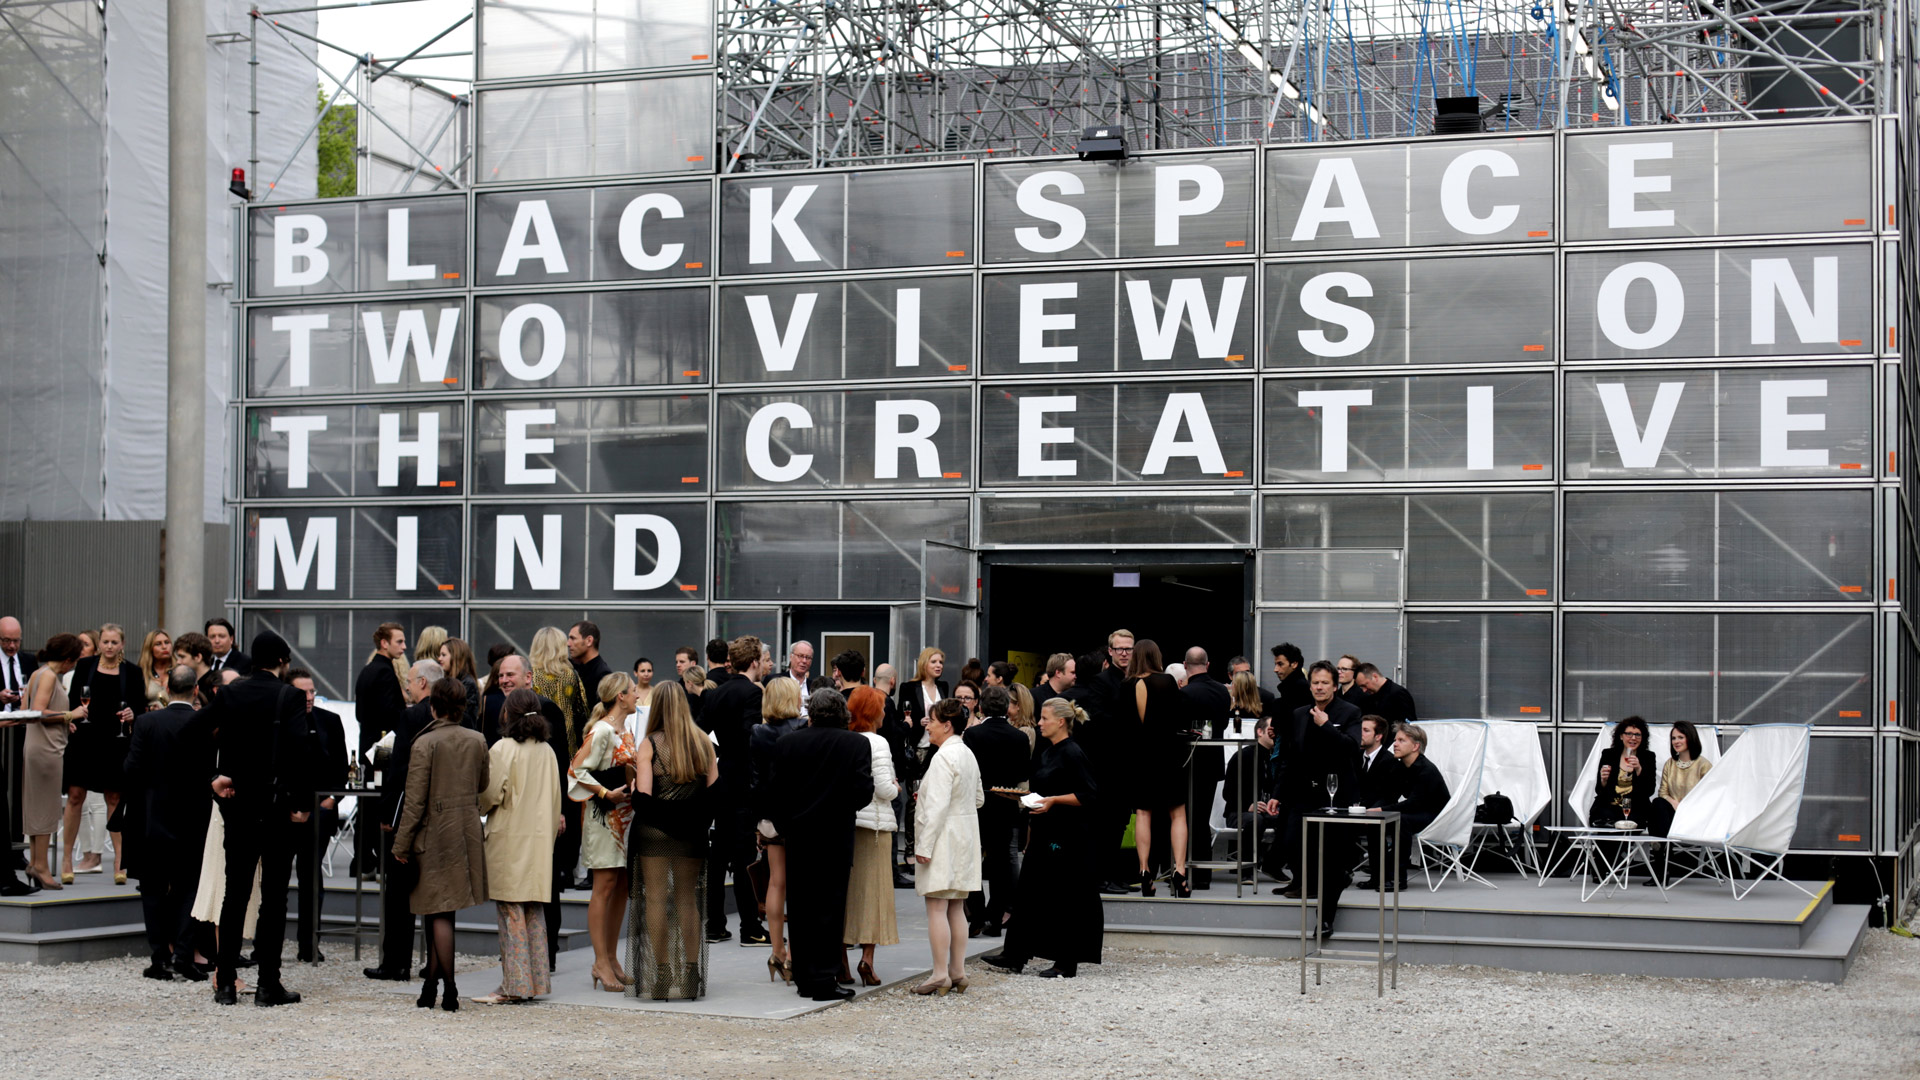 The invited guests, all dressed in black and gold, stand in front of the entrance to the Schaustelle.